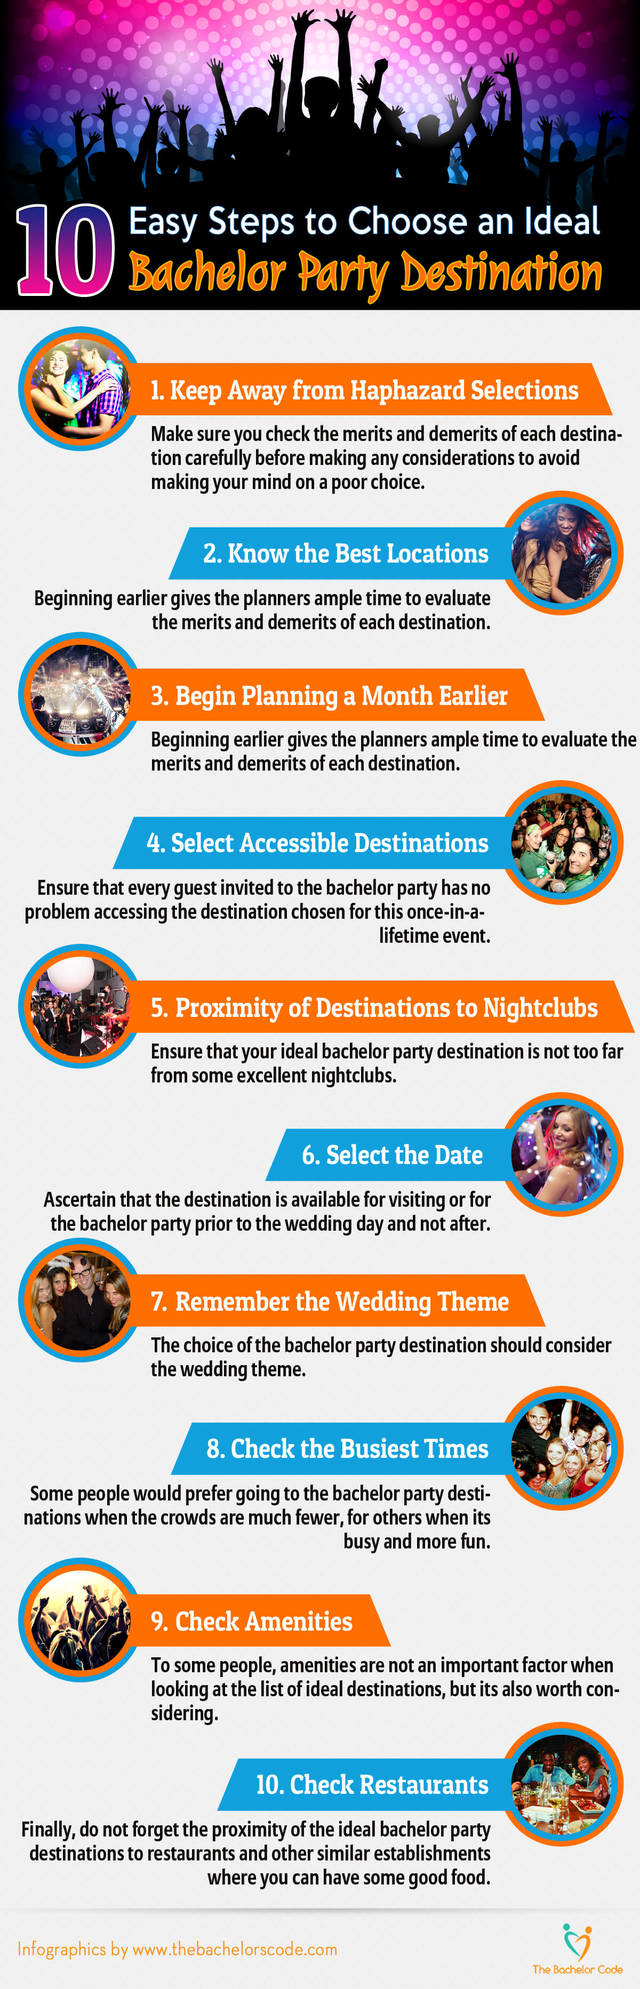 Ten easy steps to choose an ideal bachelor party destination